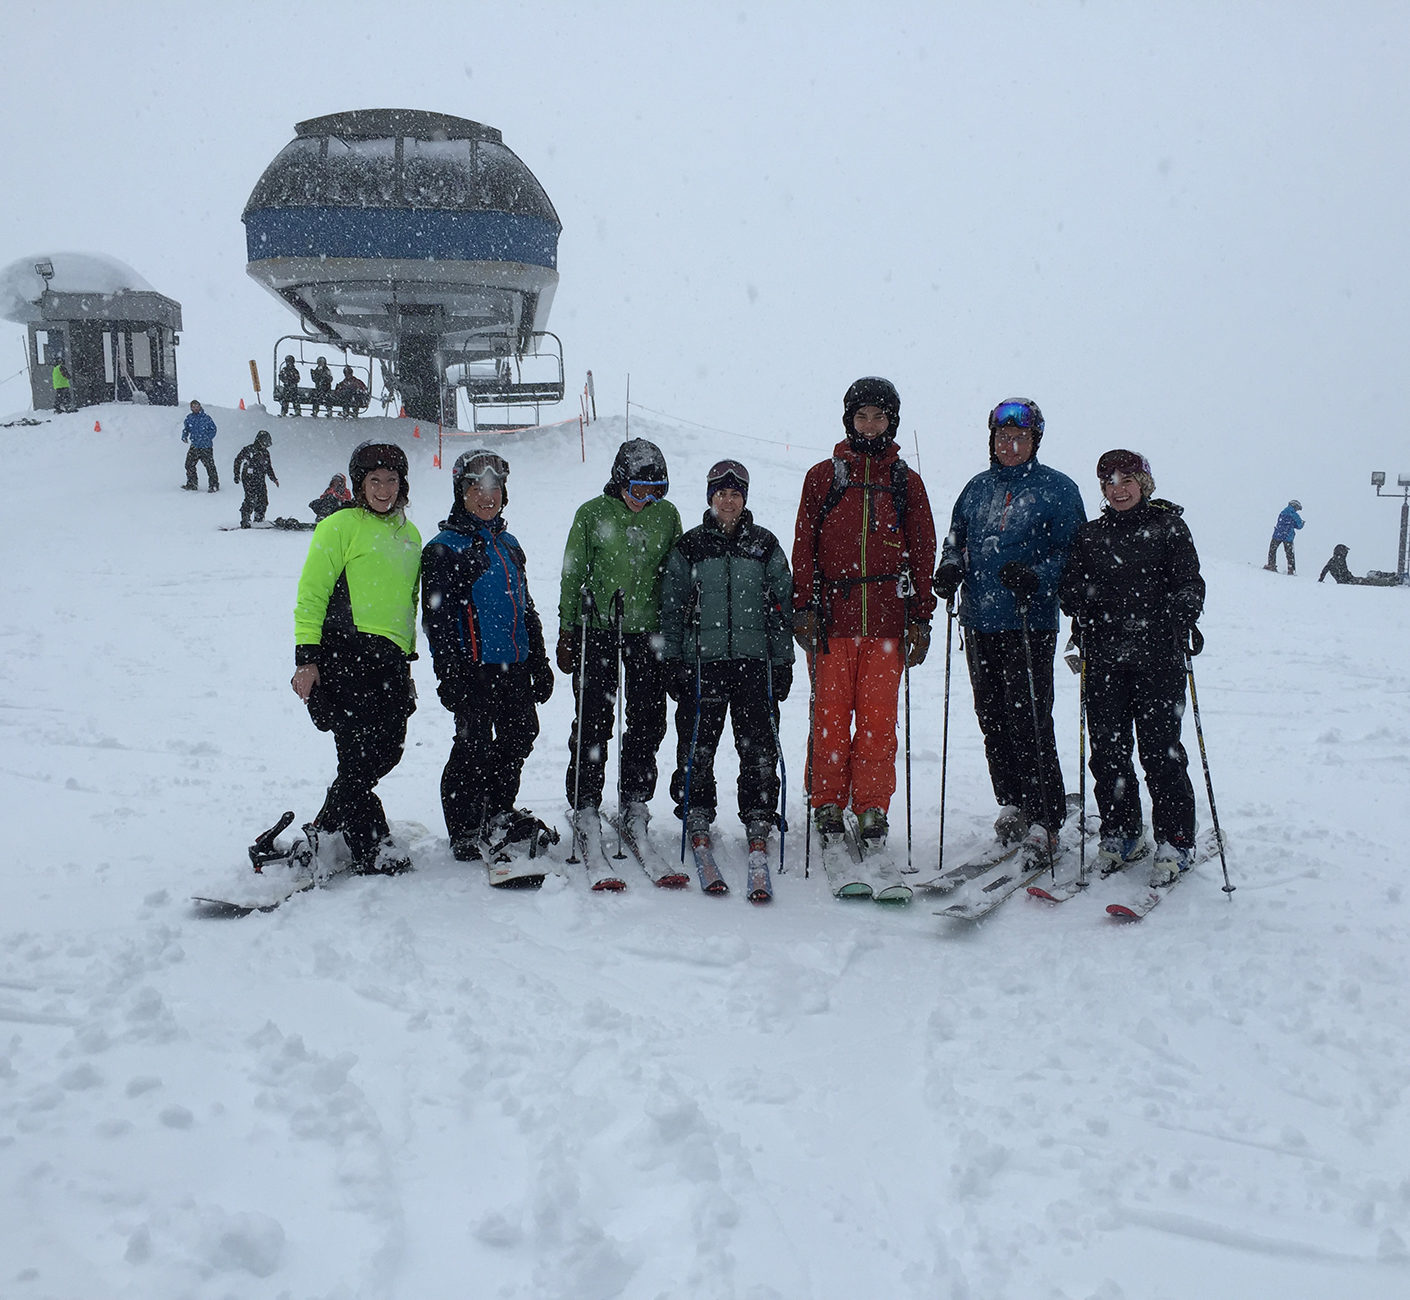 People on skis and snowboards on the top of a snowy mountain